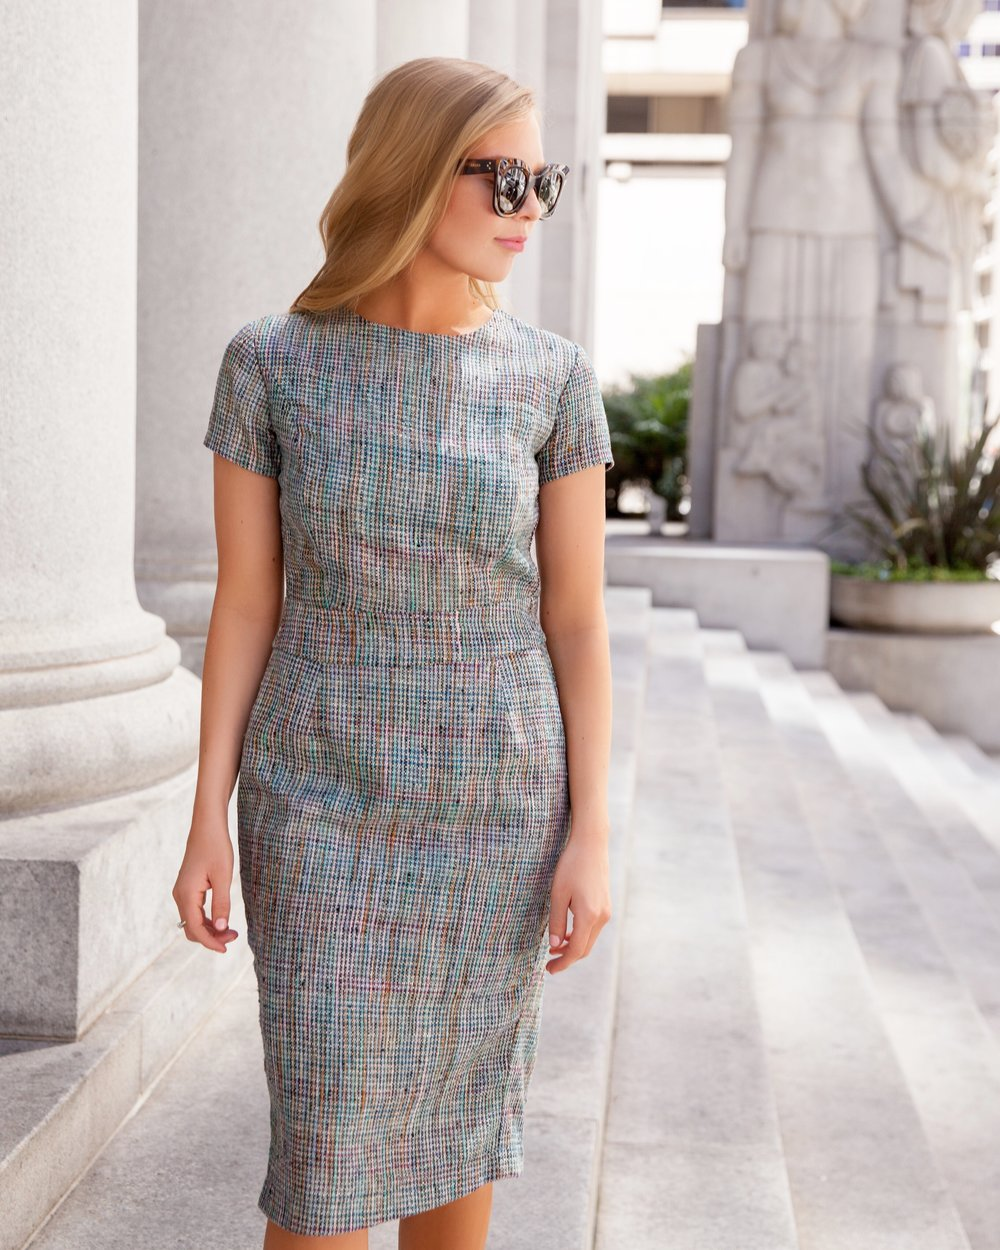 Sunny lunch break in the Tech Tweed Sheath Dress. ☀️